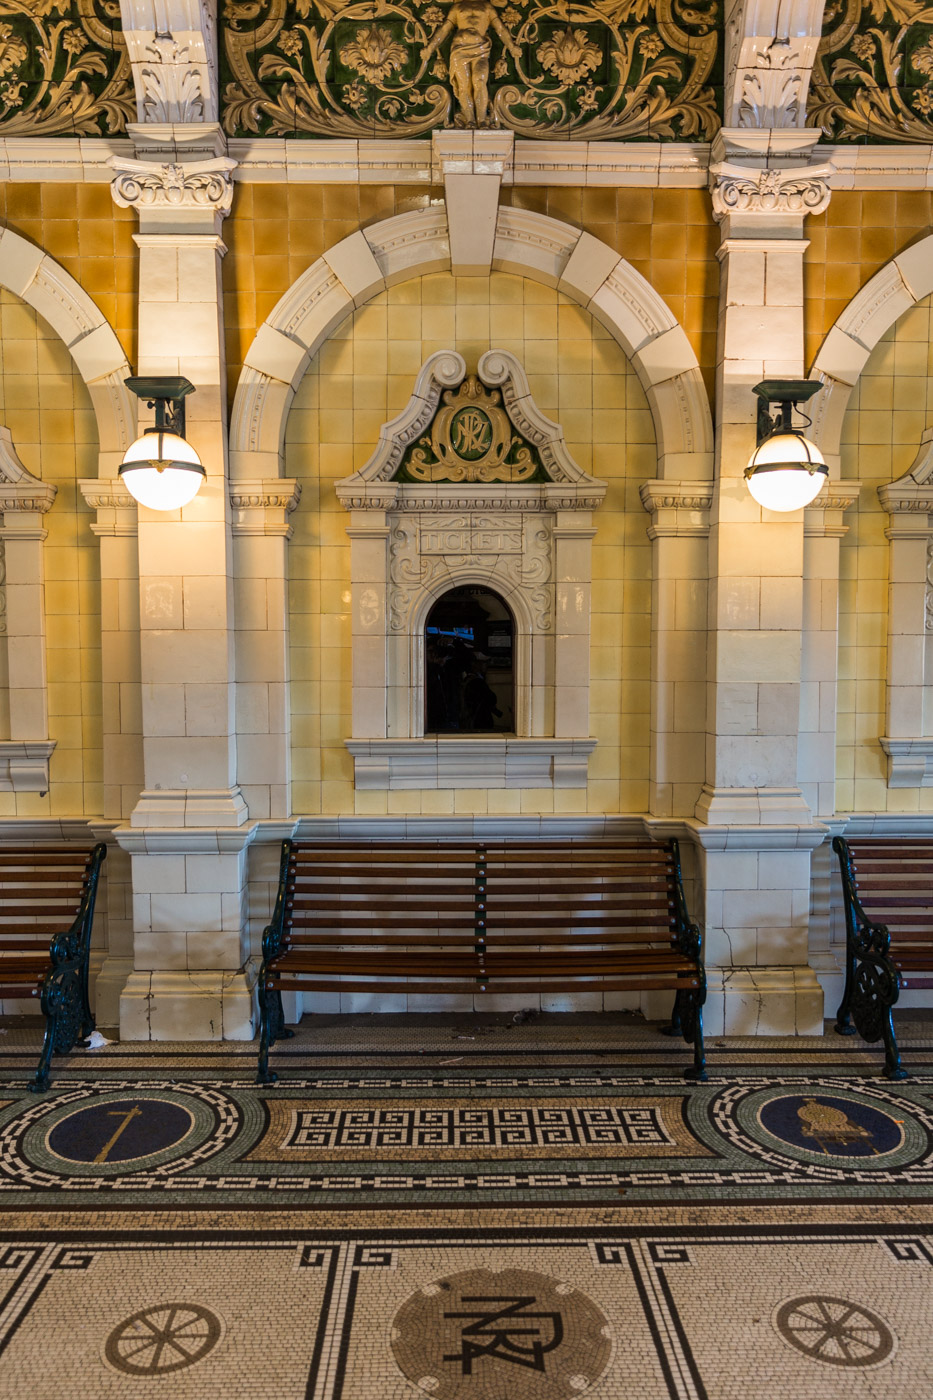 Dunedin Rail Station Interior, South Island, New Zealand